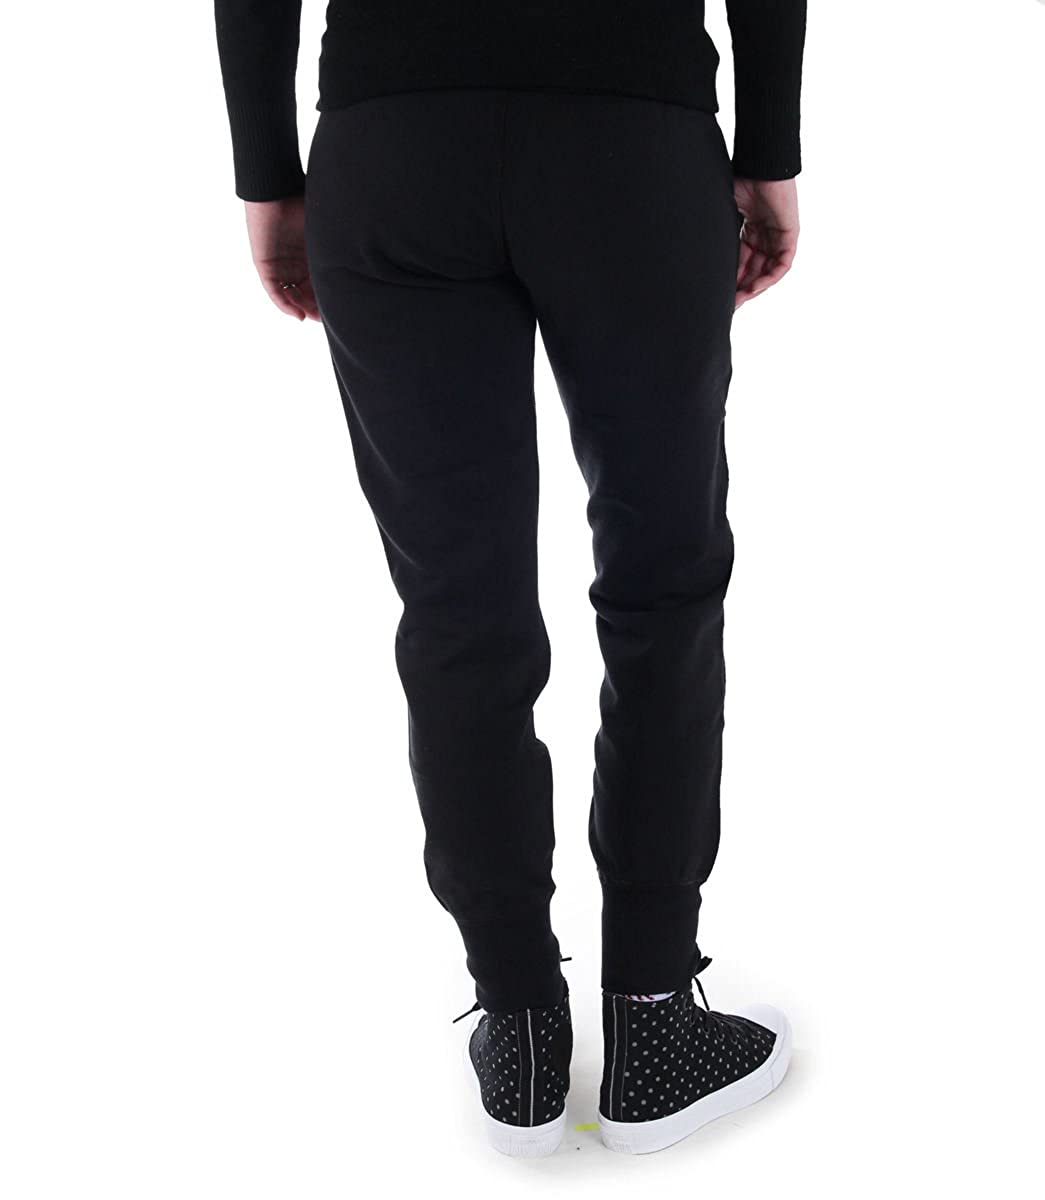 Converse Pants Women (Trackpants) CORE Signature FT - Black - 10003140-A01   Amazon.co.uk  Clothing d005da9428